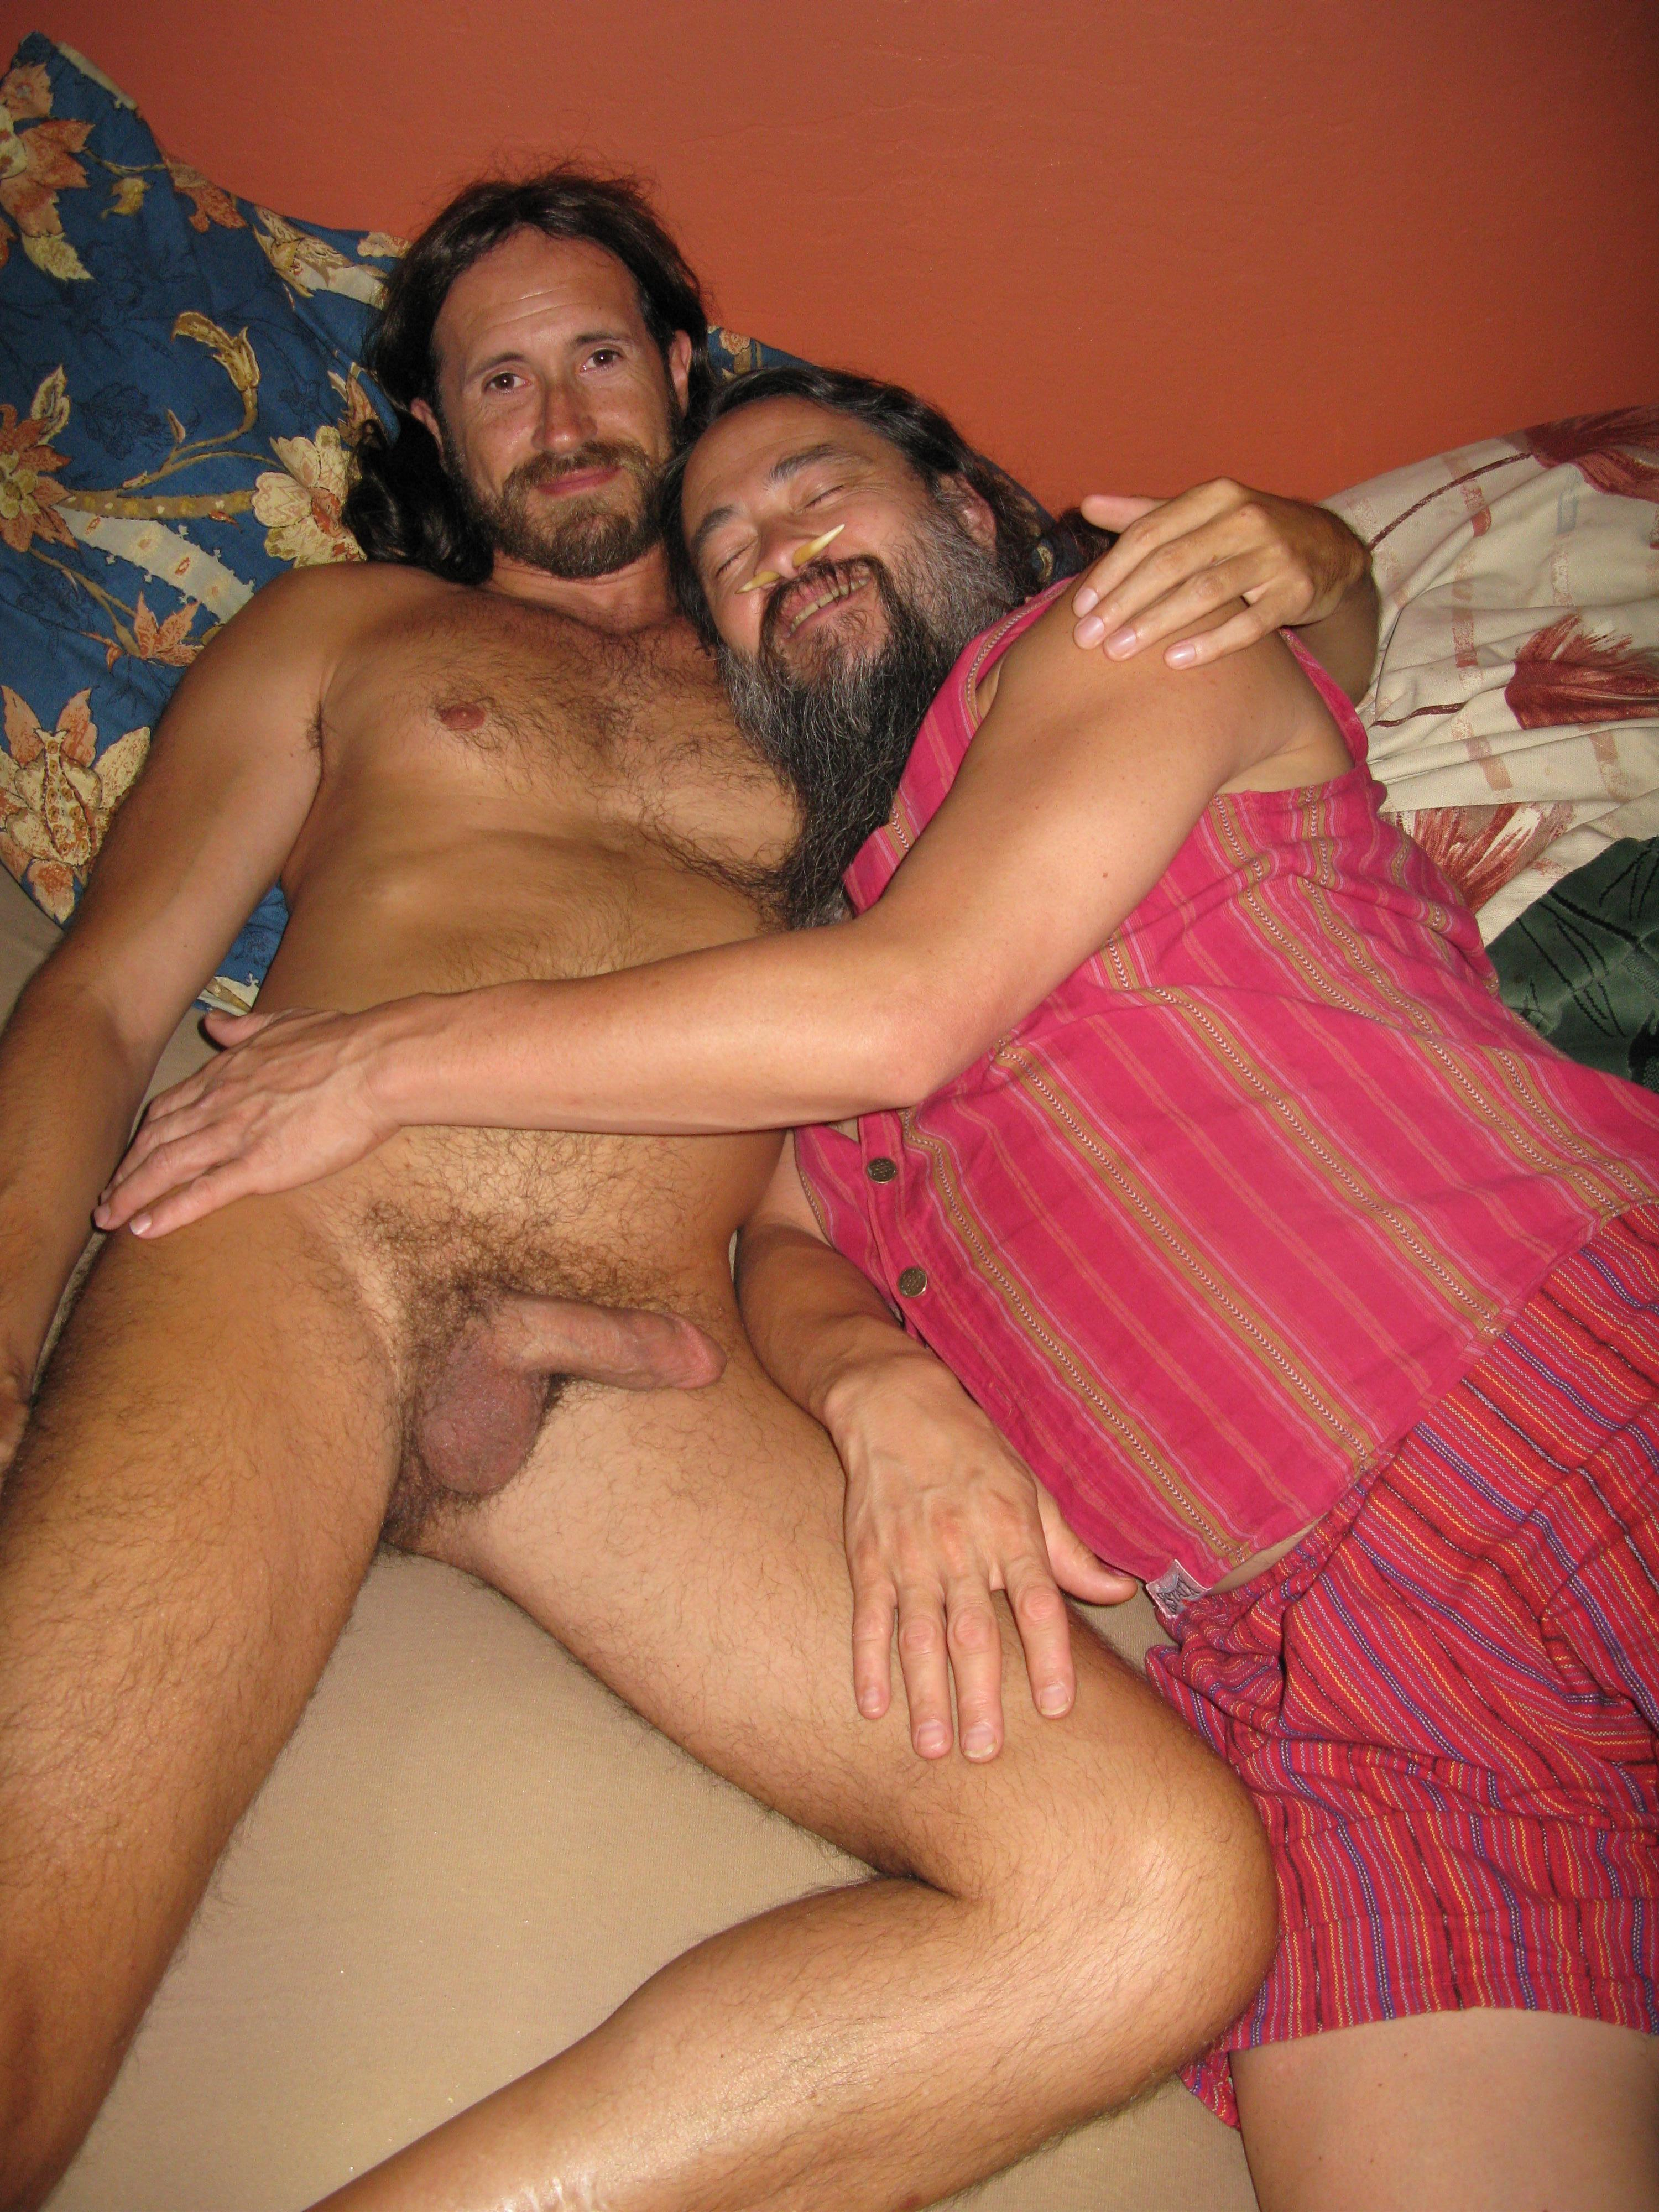 Kwai and Paul Get the Party Off to a Cuddly Start